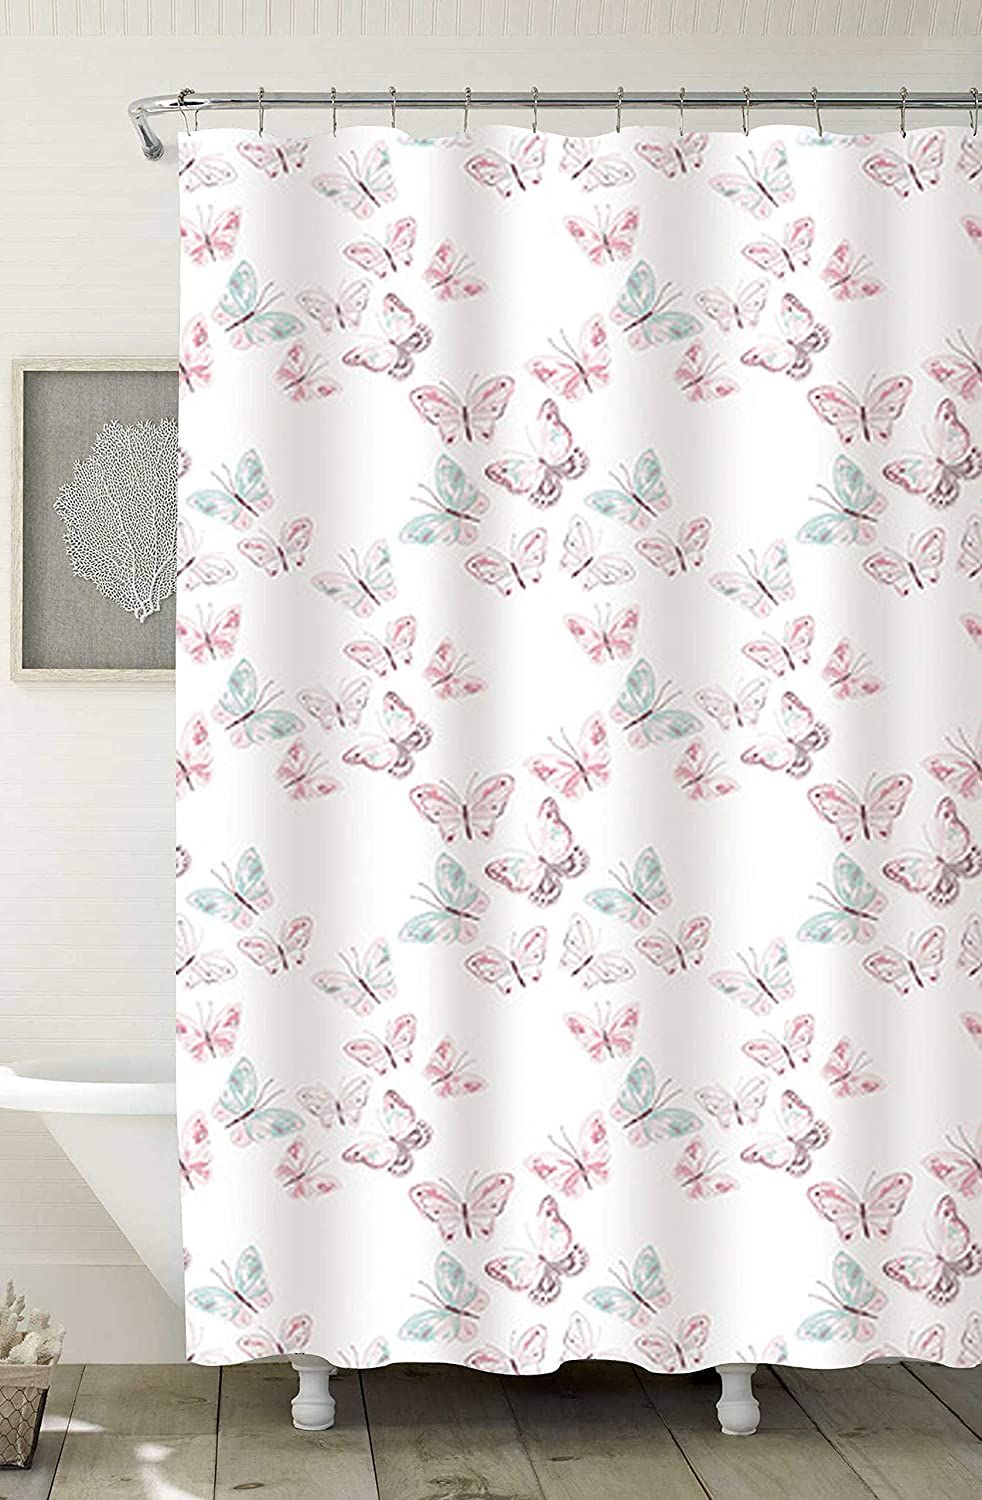 """Home Expressions Durable Waterproof Peva Shower Curtain 70""""x72"""" Delicate Butterflies Product Name"""